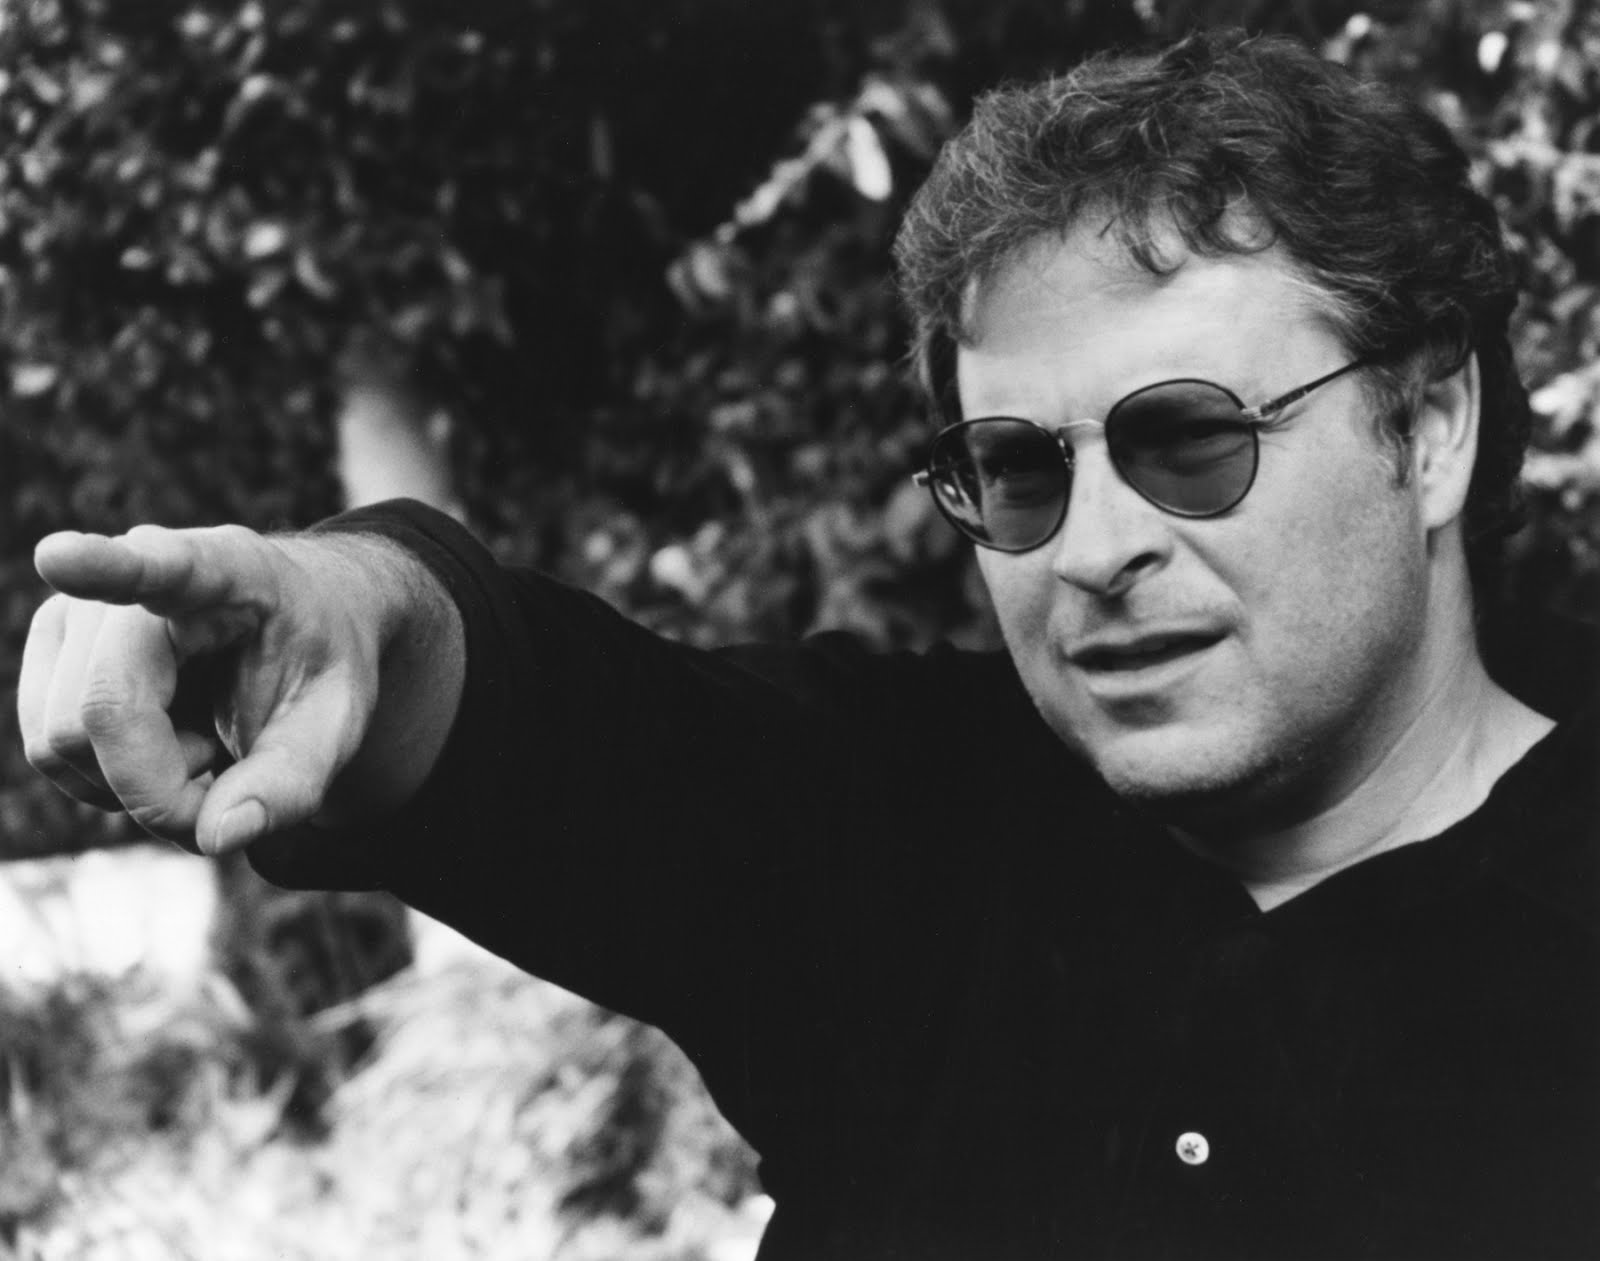 lawrence kasdan Whipping Indiana Jones Back Into Fortune and Glory